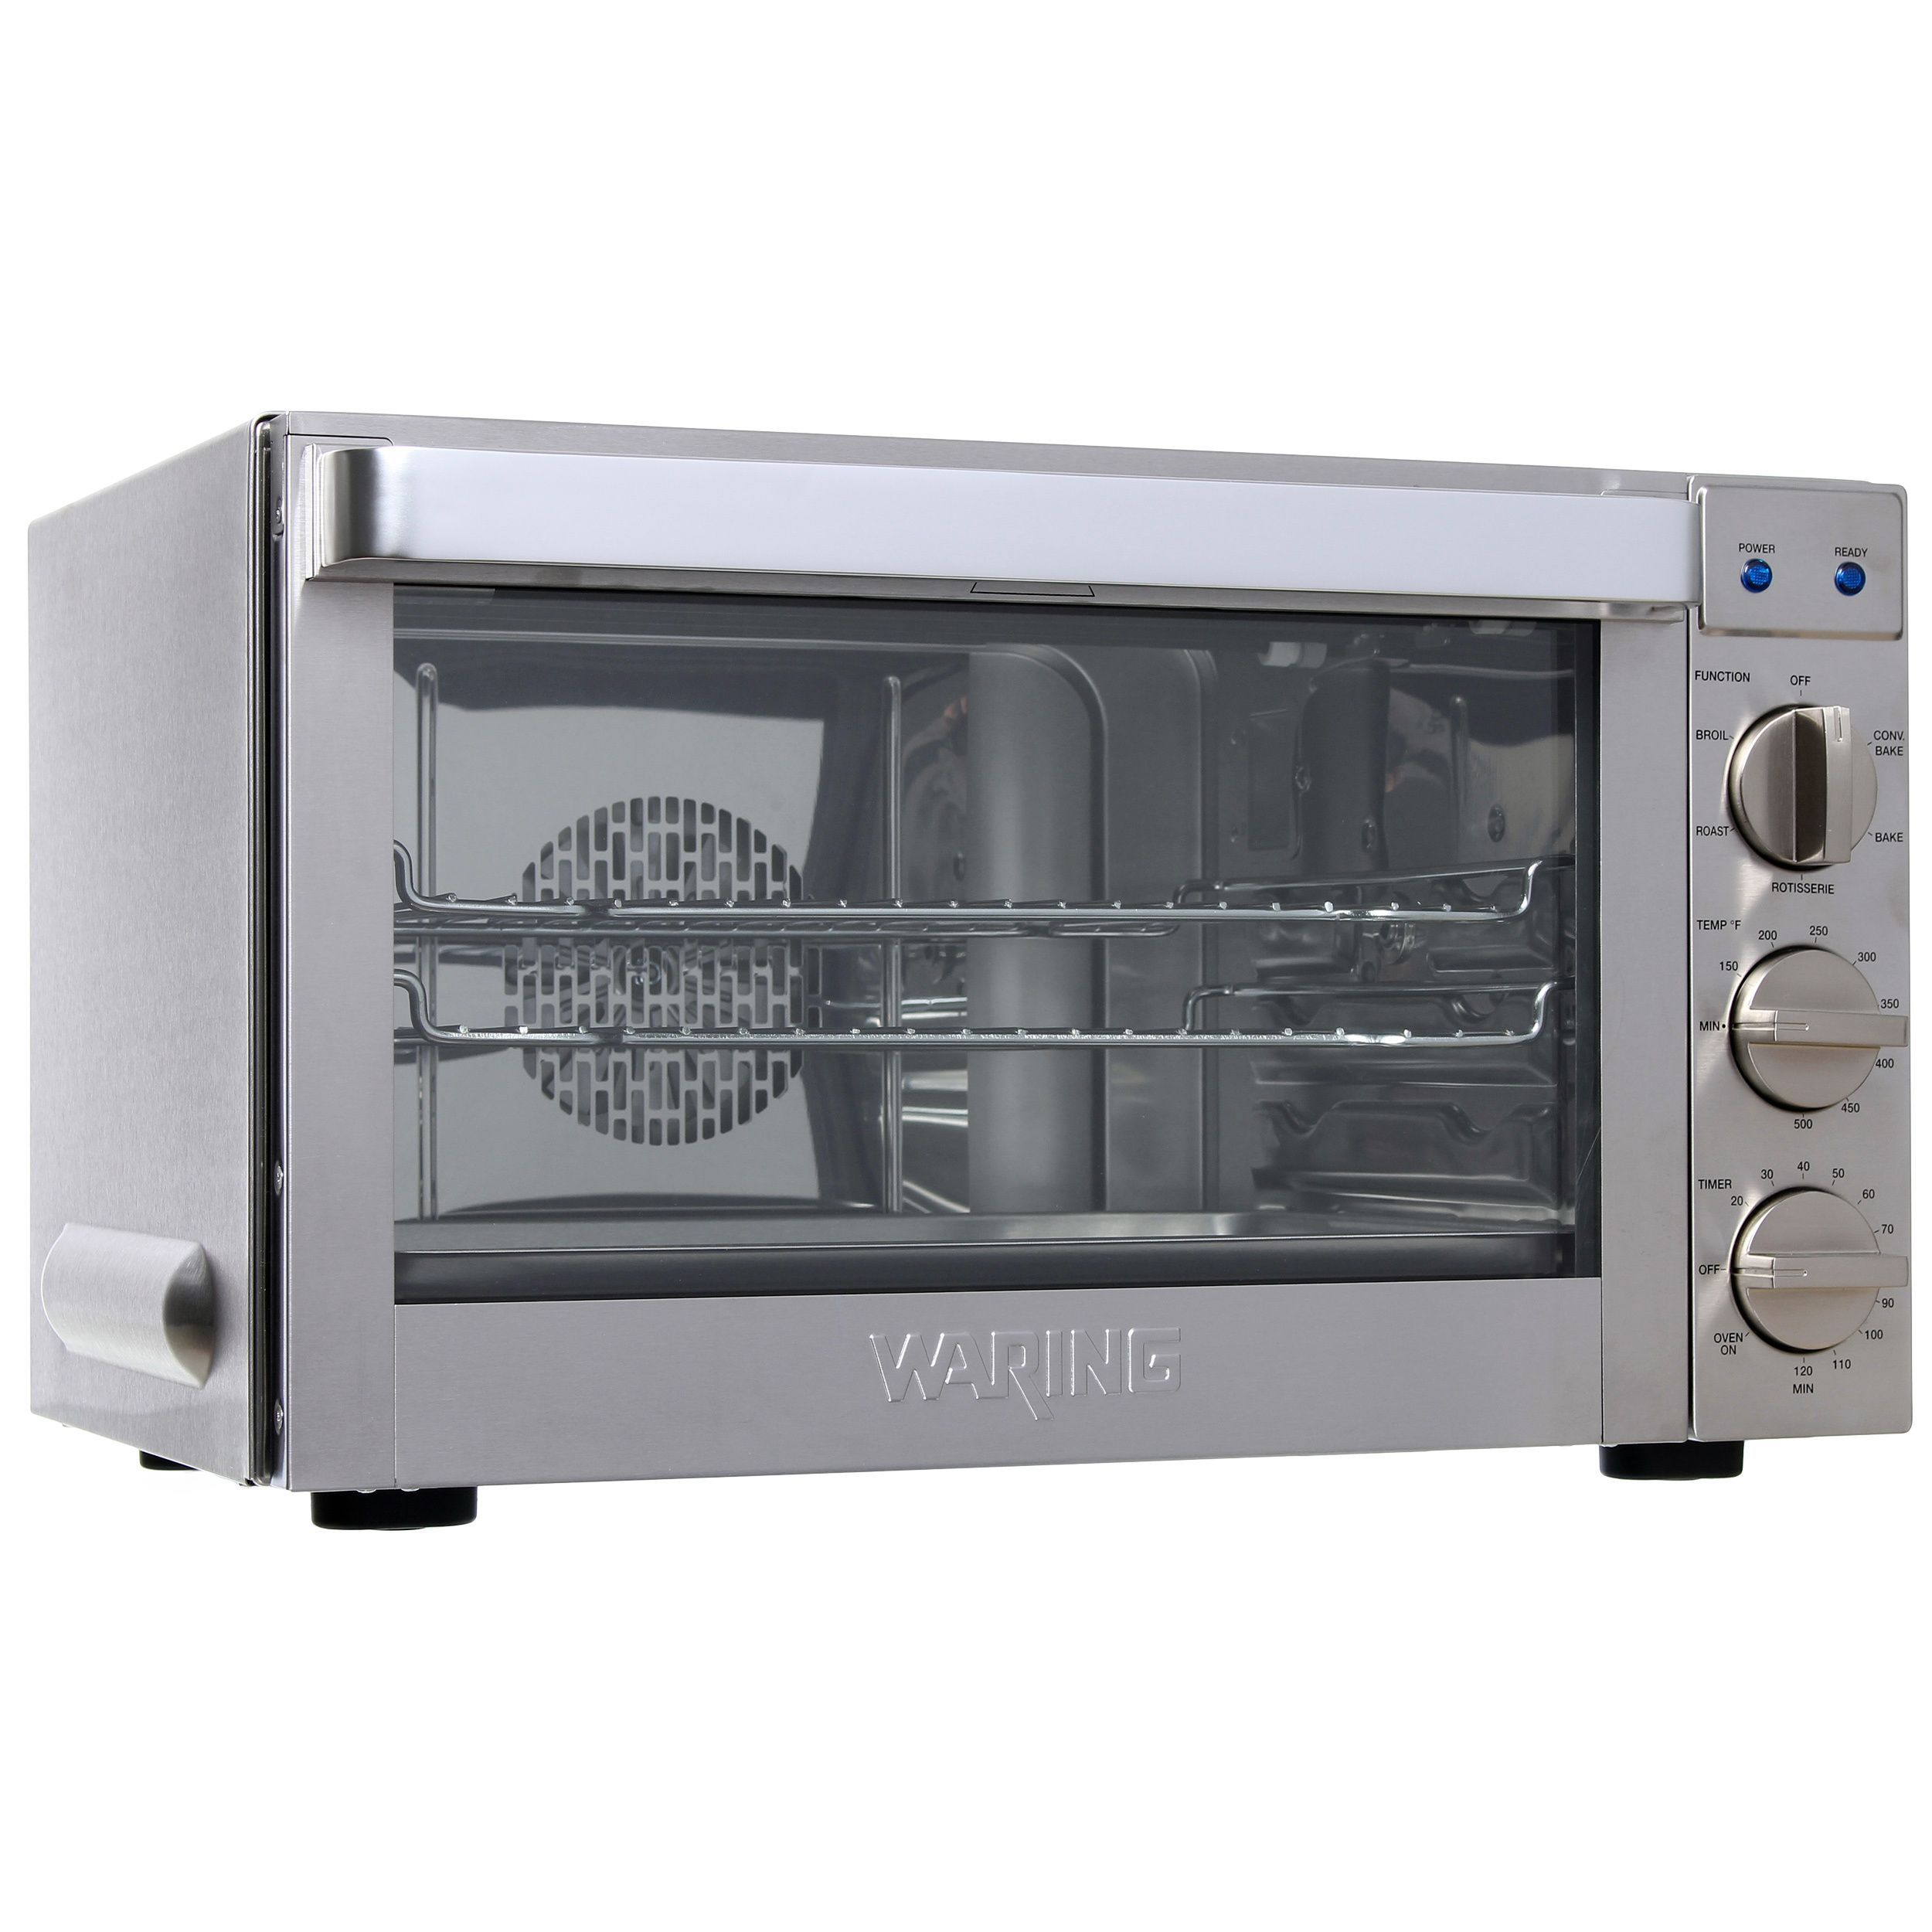 sears walmart steel cabinet toaster buy oven stainless mount black mounting kit decker the under